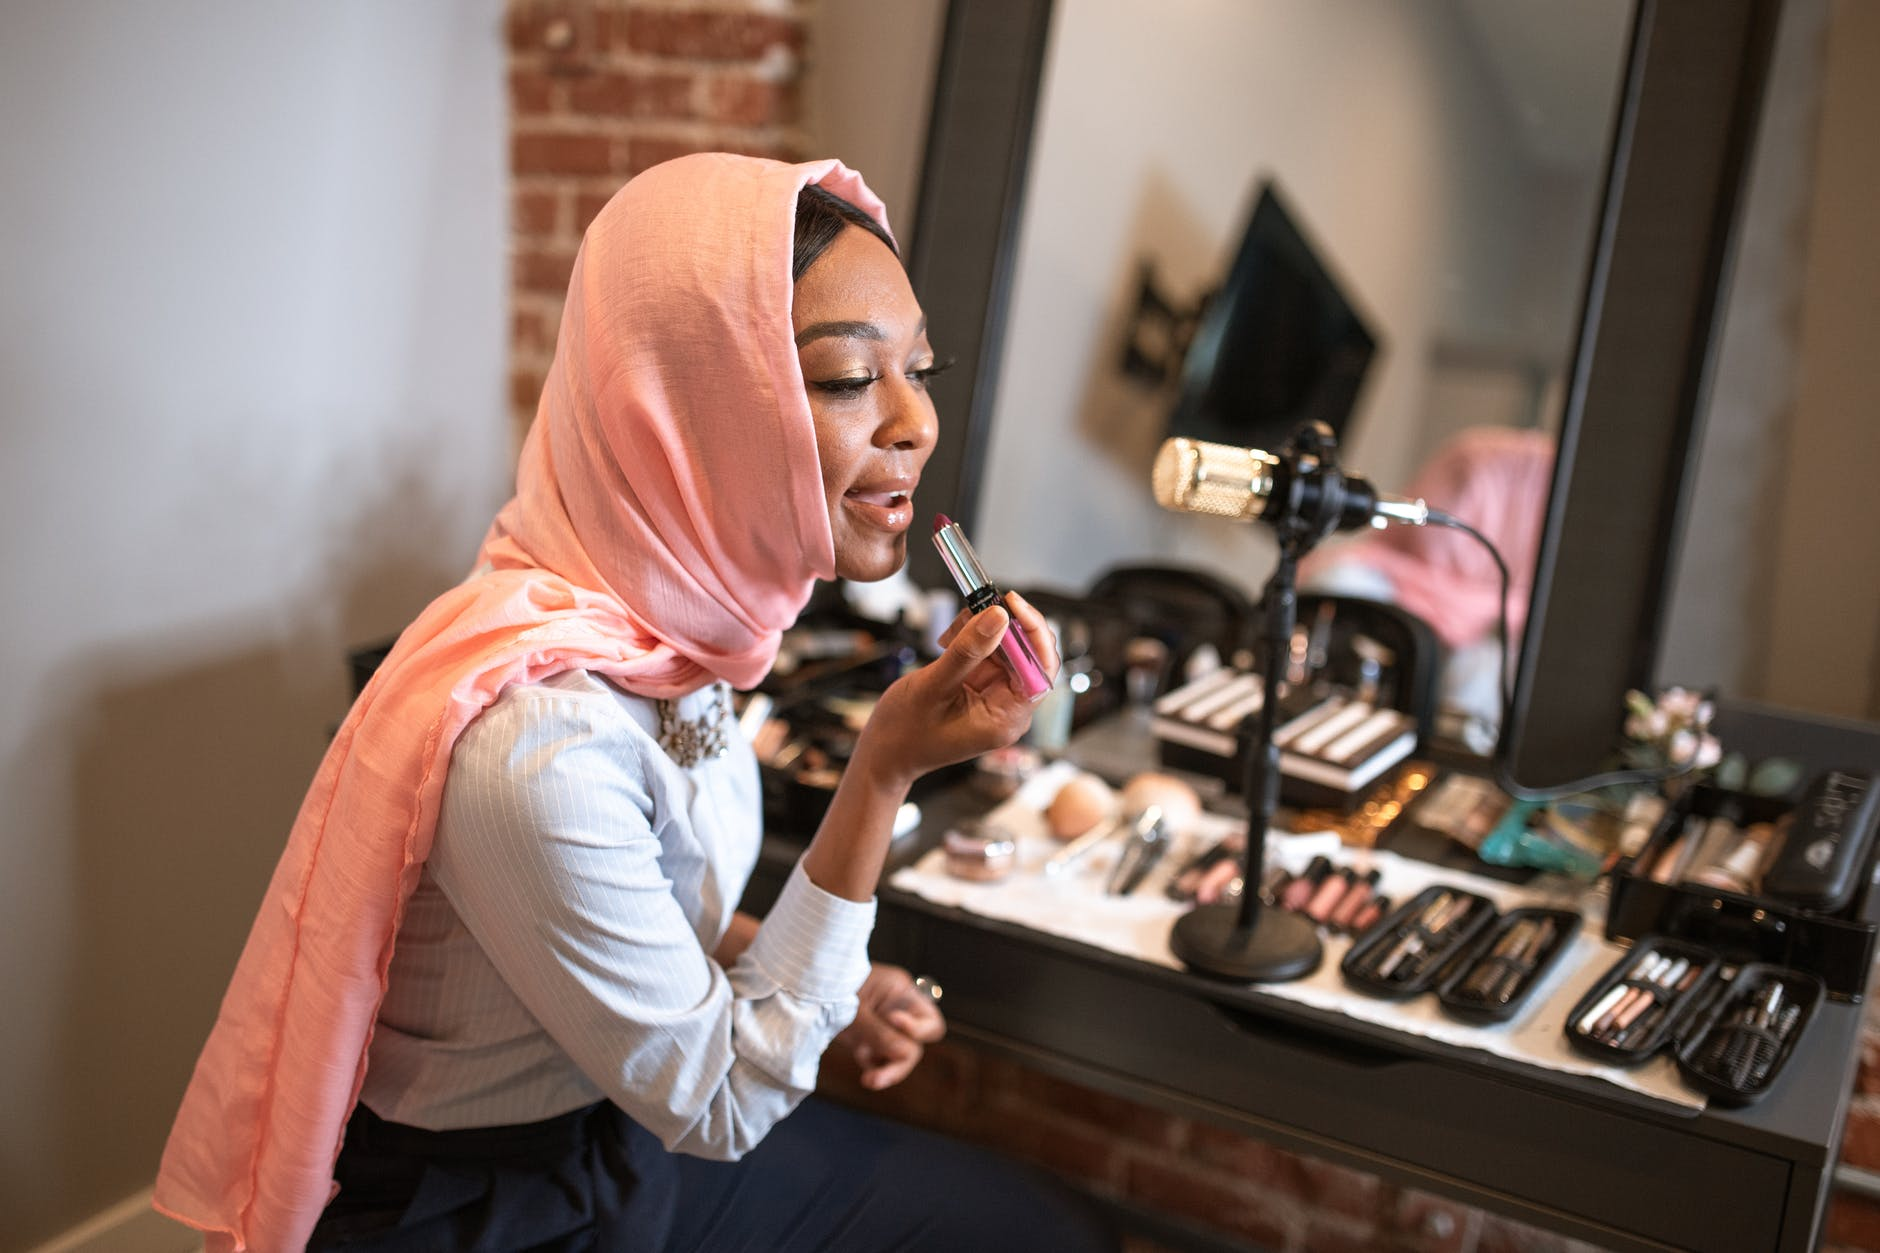 become a makeup artist - business opportunities in nigeria in 2021 - Sam&Wright